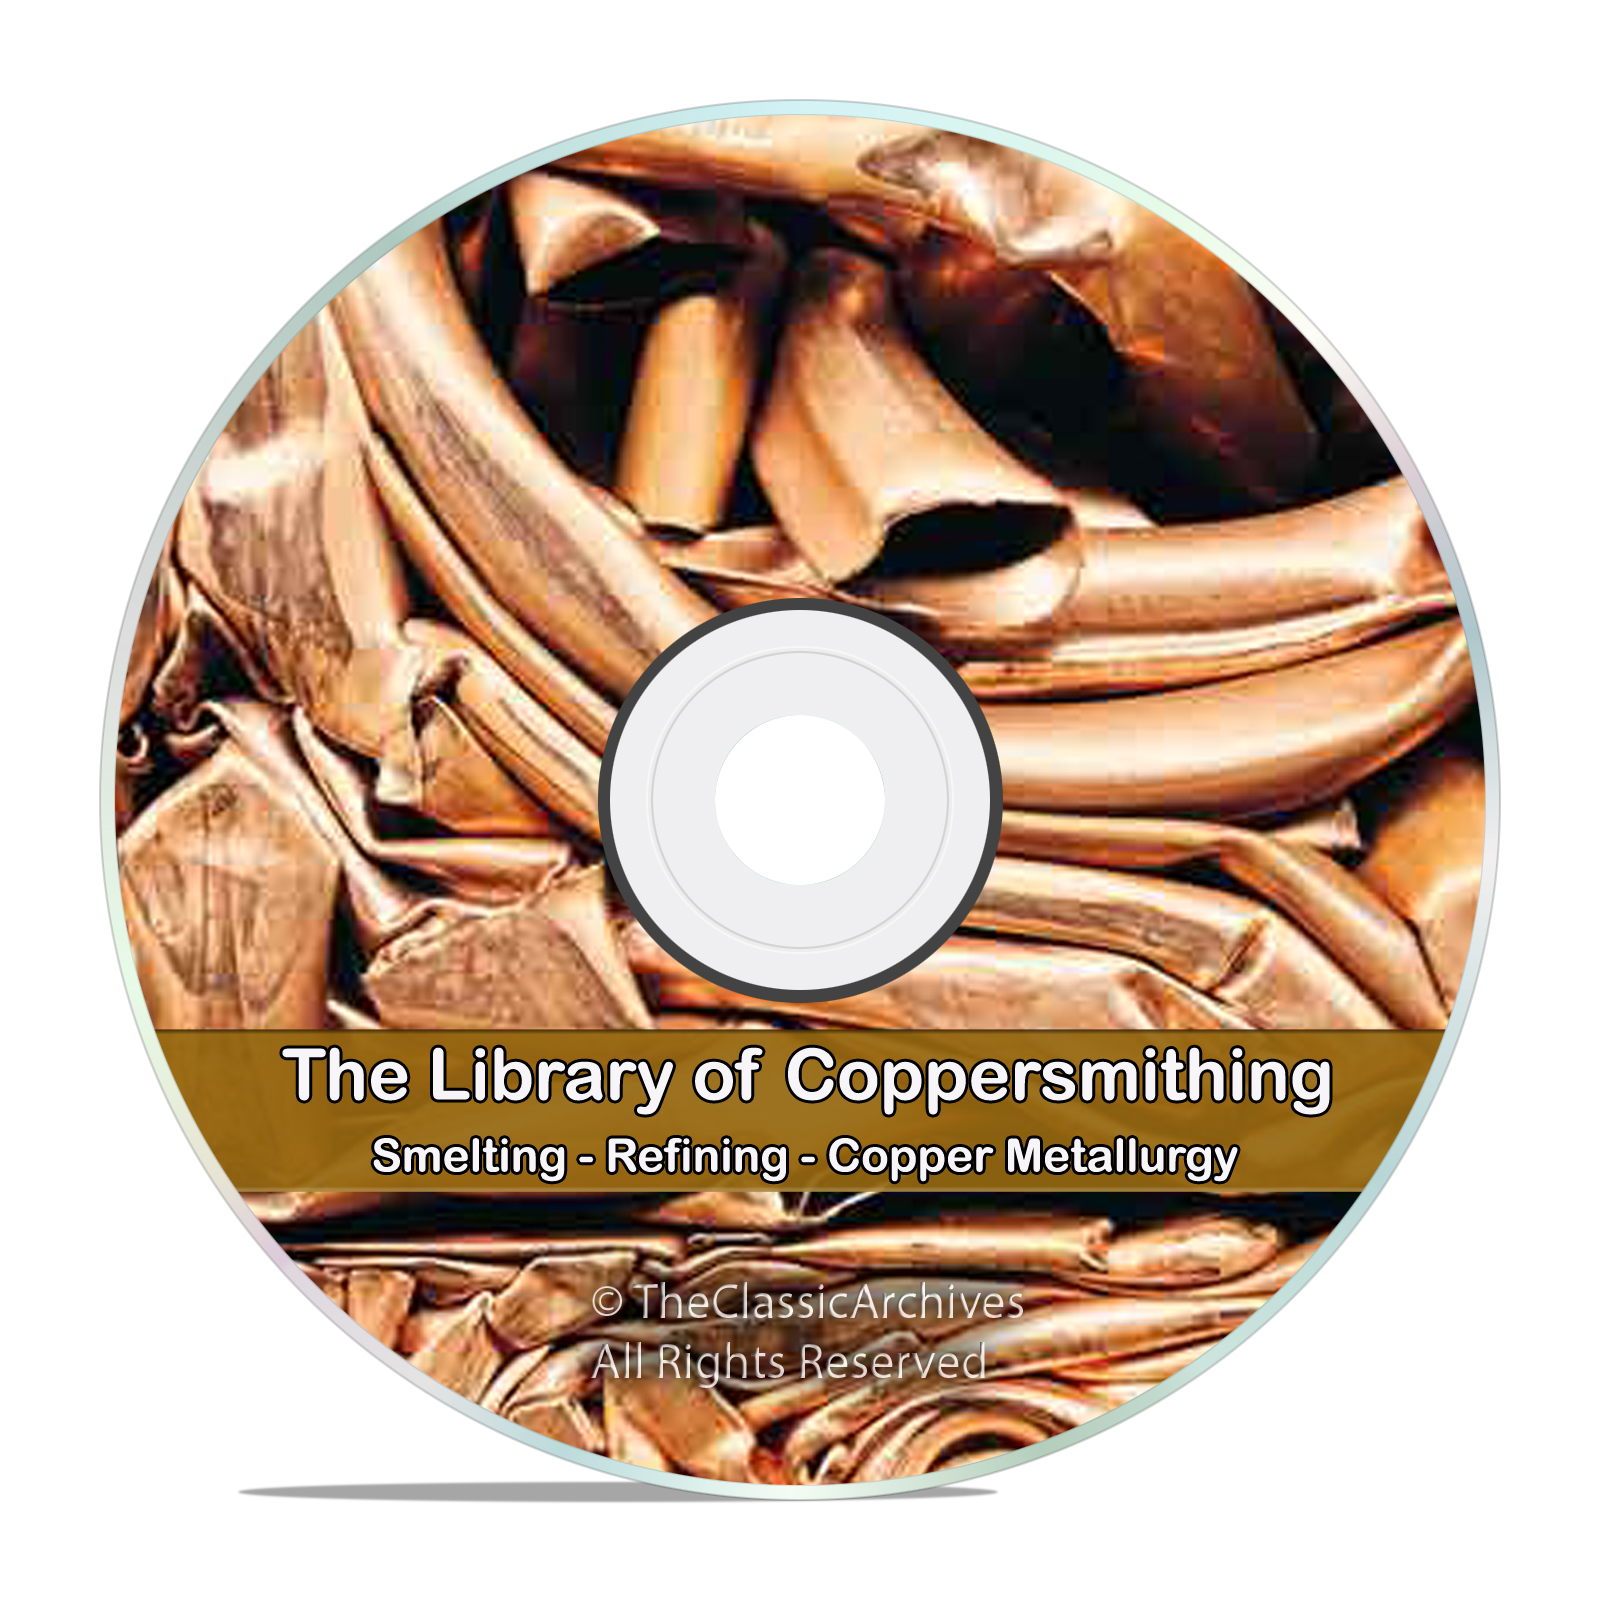 Copper Smelting Refining Mining Coppersmithing Metallurgy Reference Book CD